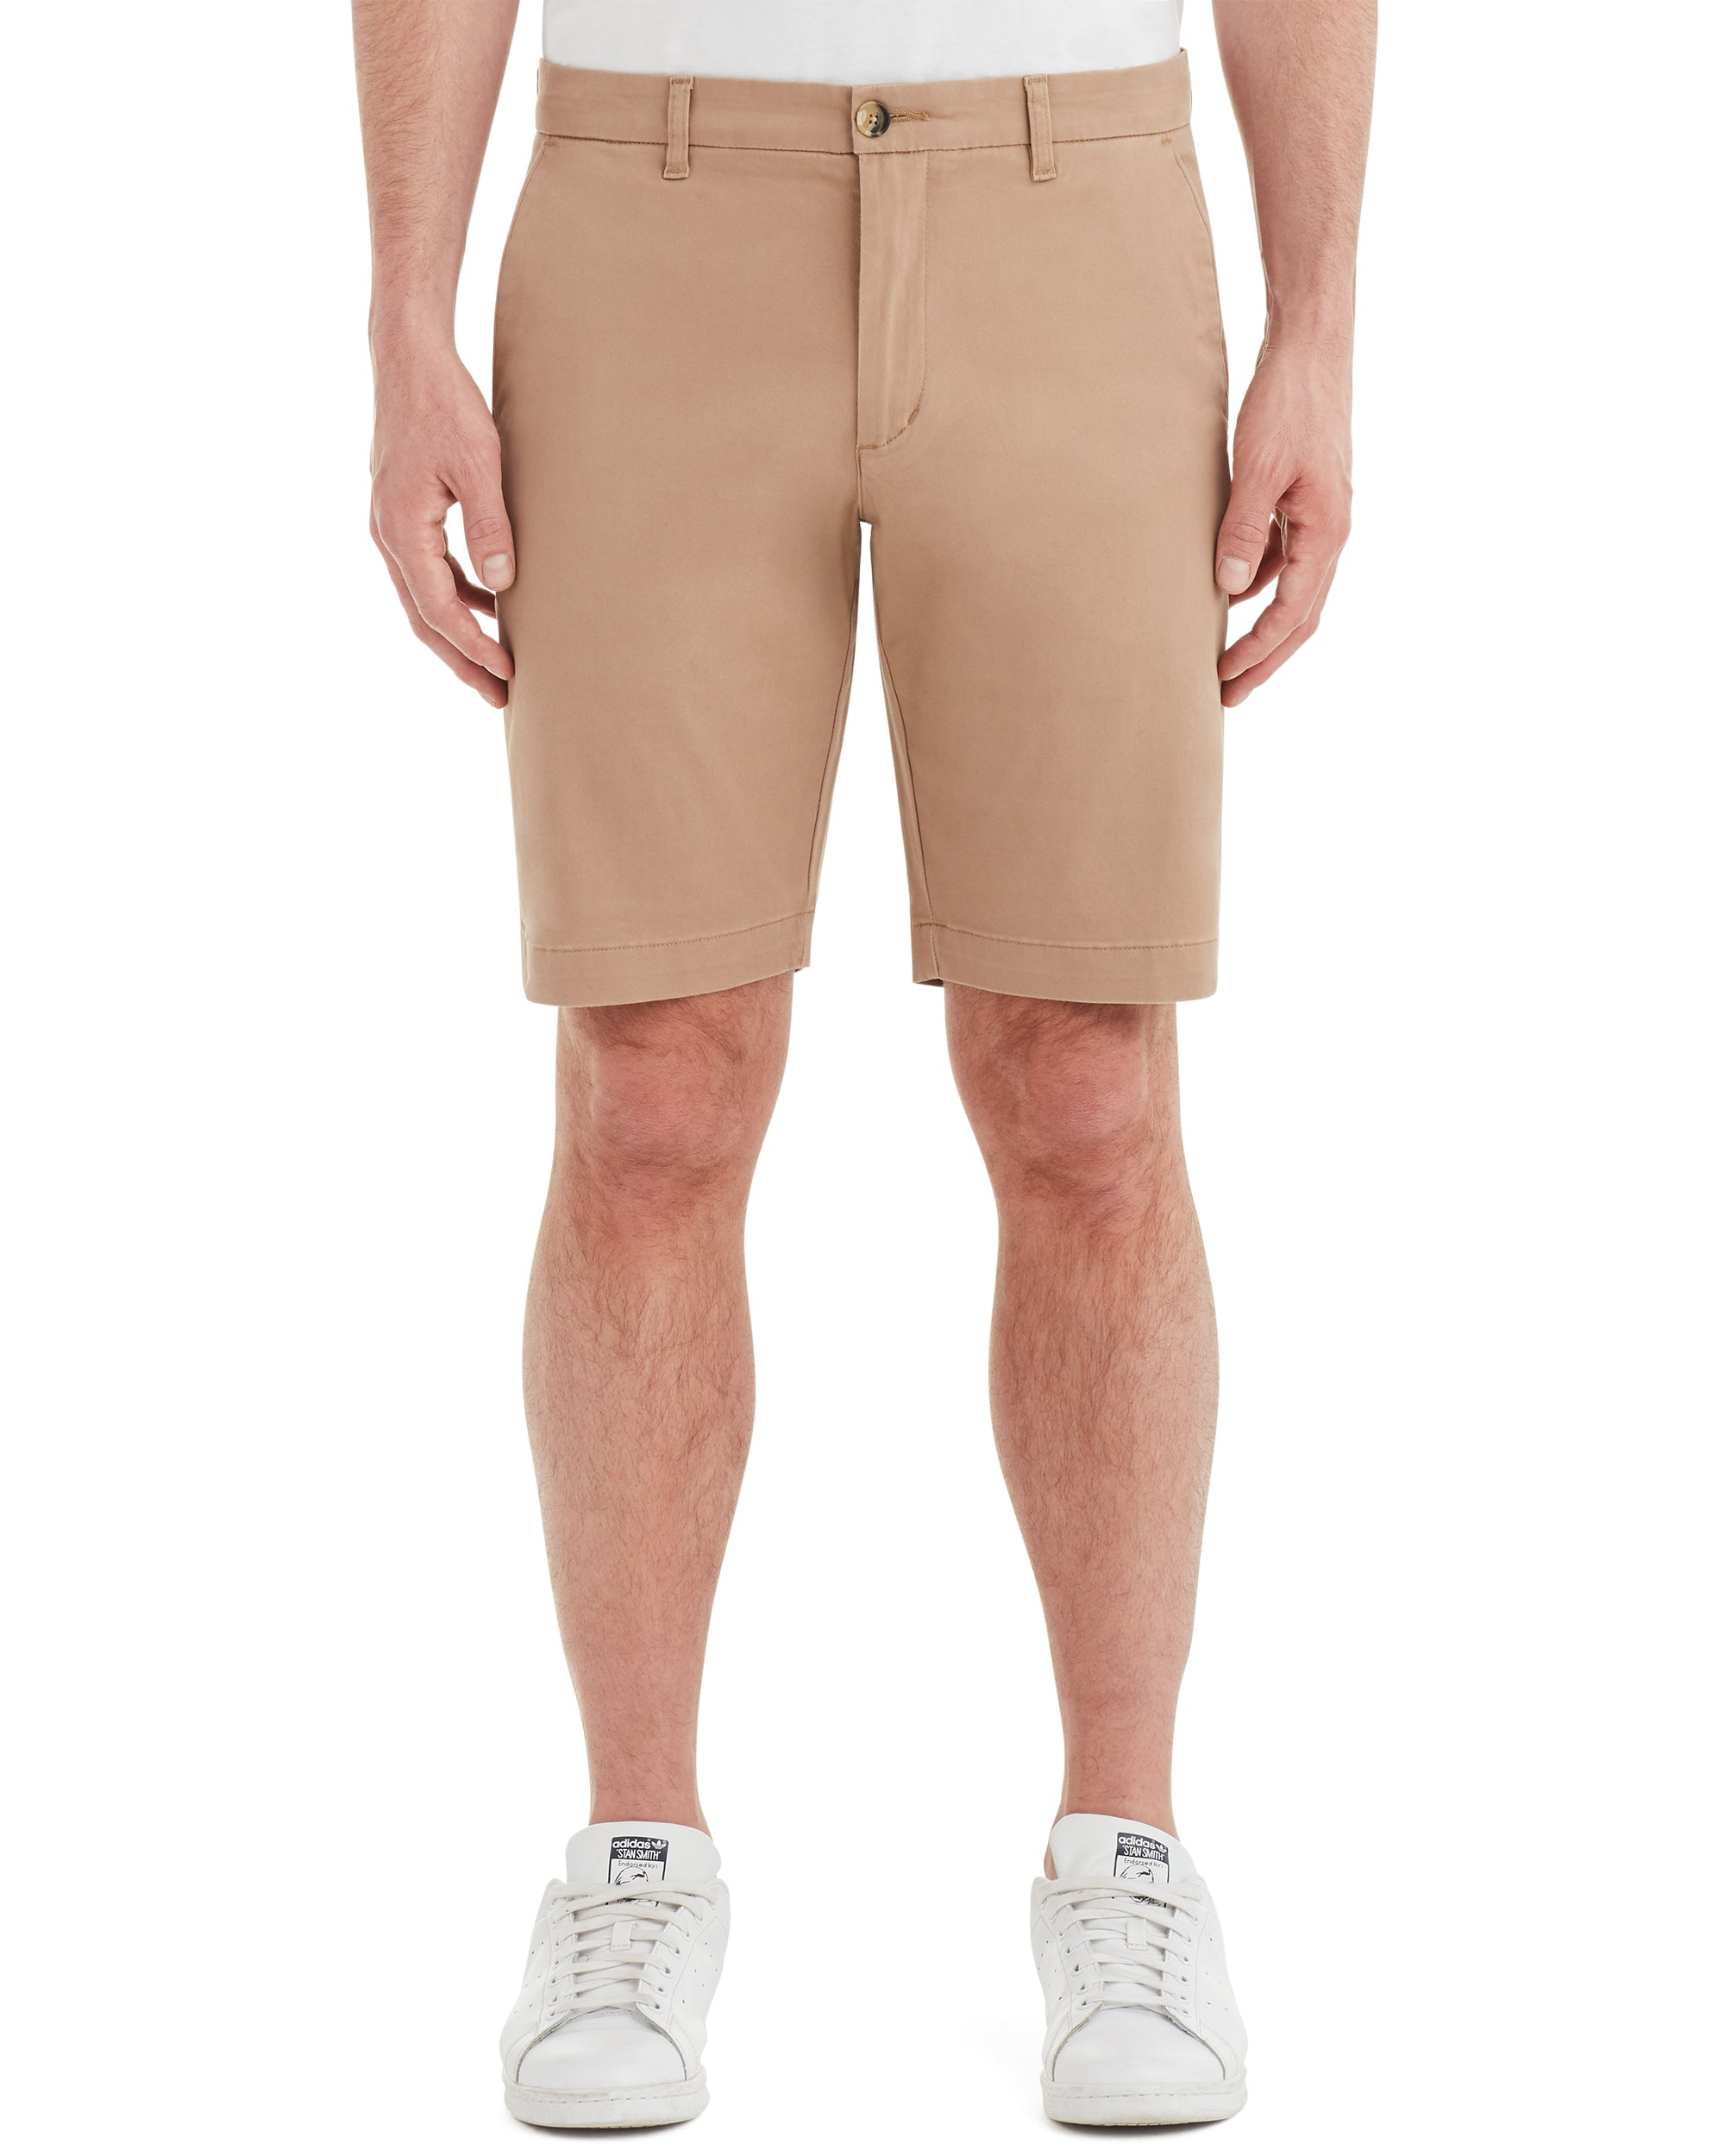 Brushed Stretch Cotton Short - Stone